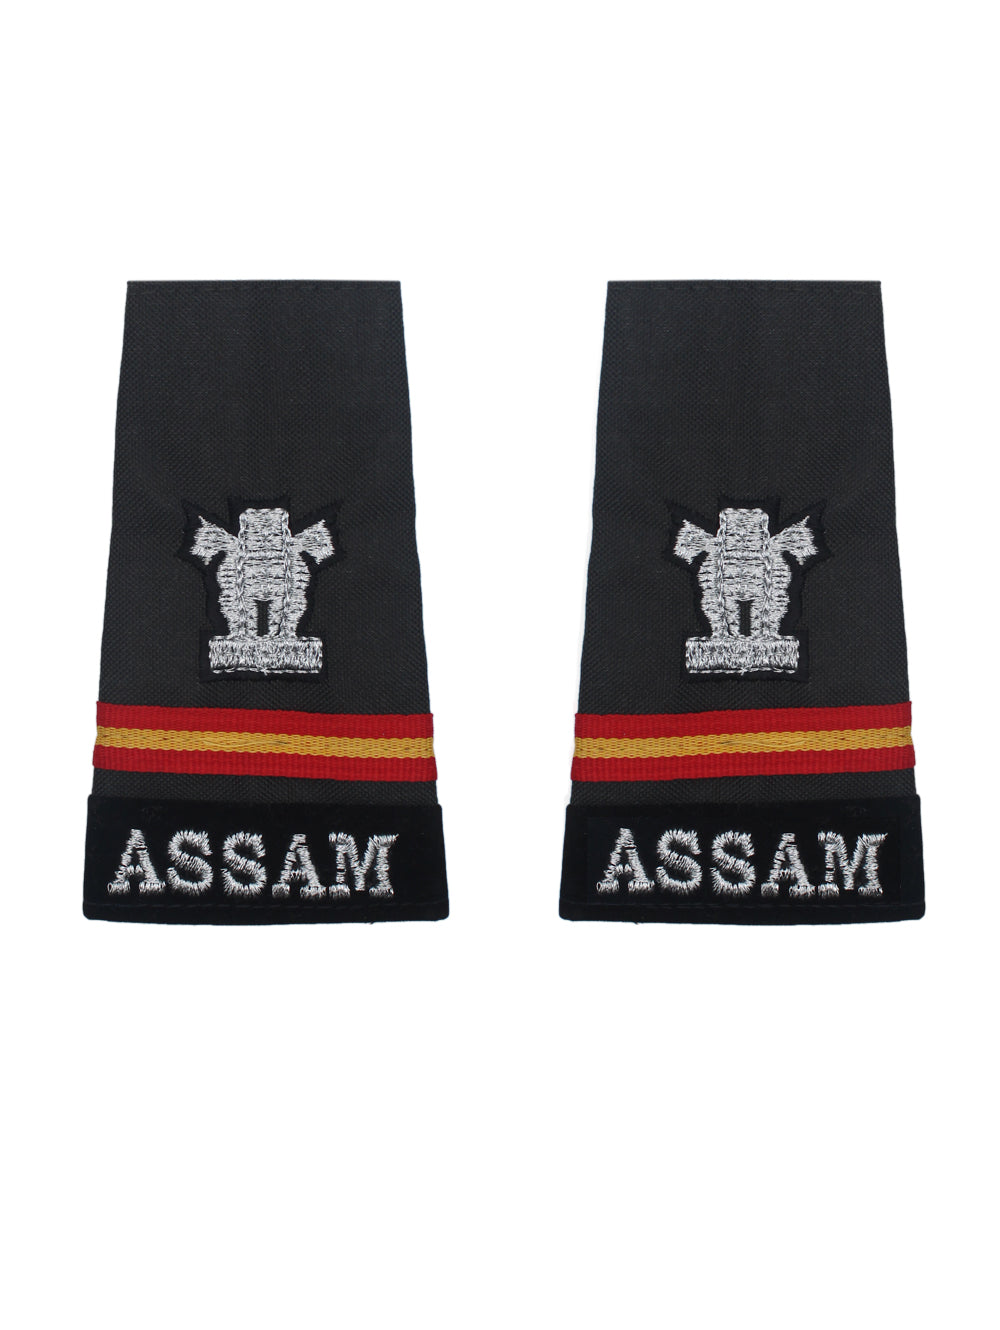 Epaulette Subedar Major Assam Regiment